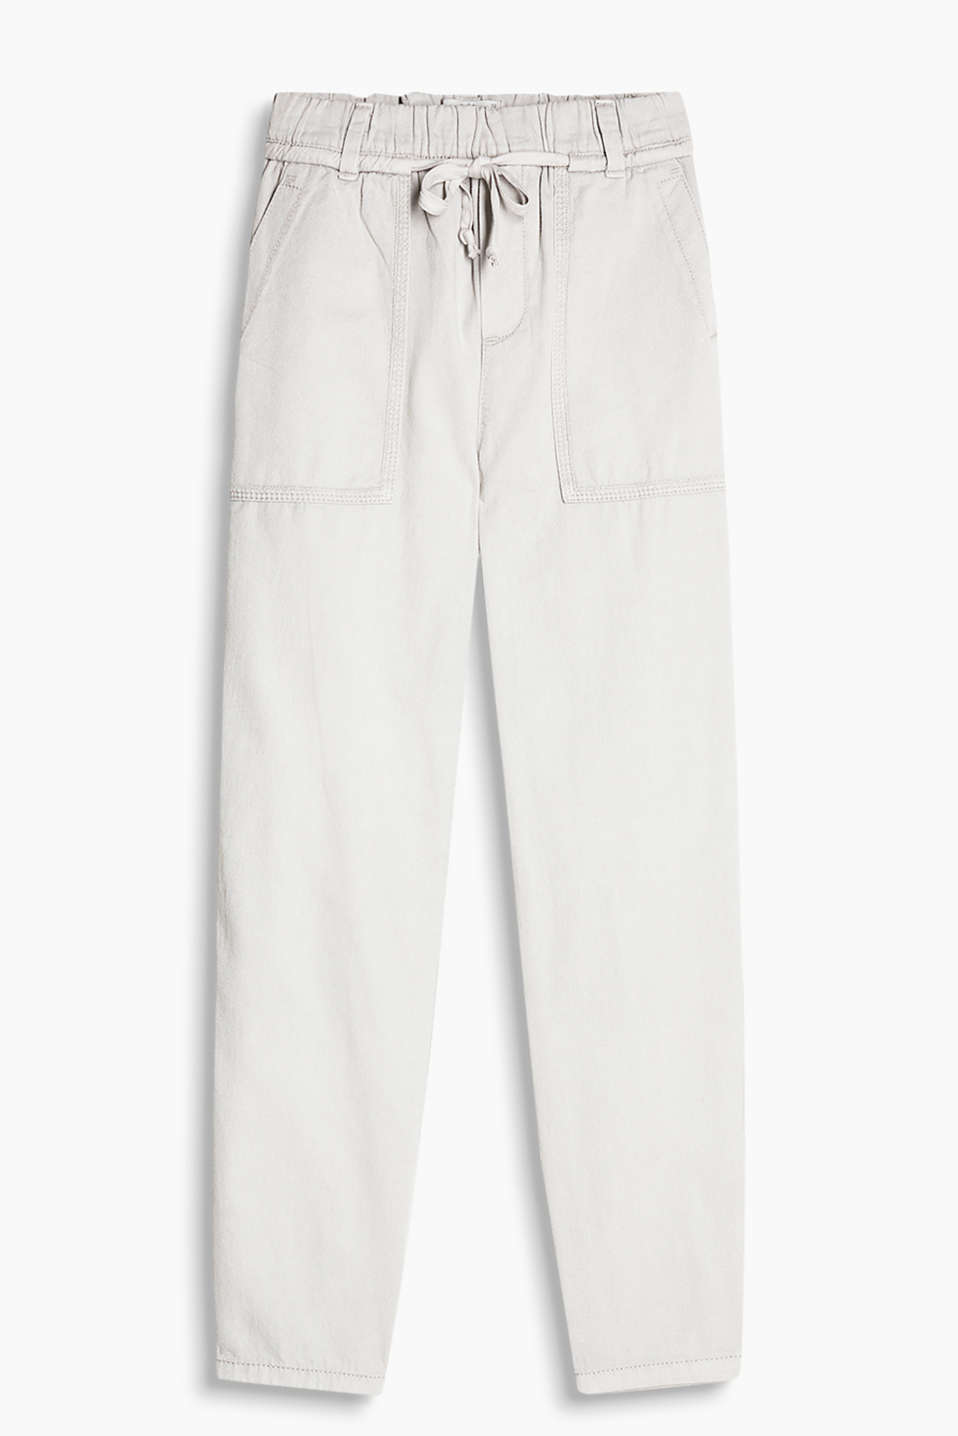 Pure cotton tracksuit bottoms with a wide, elasticated waistband and patch pockets at the hips